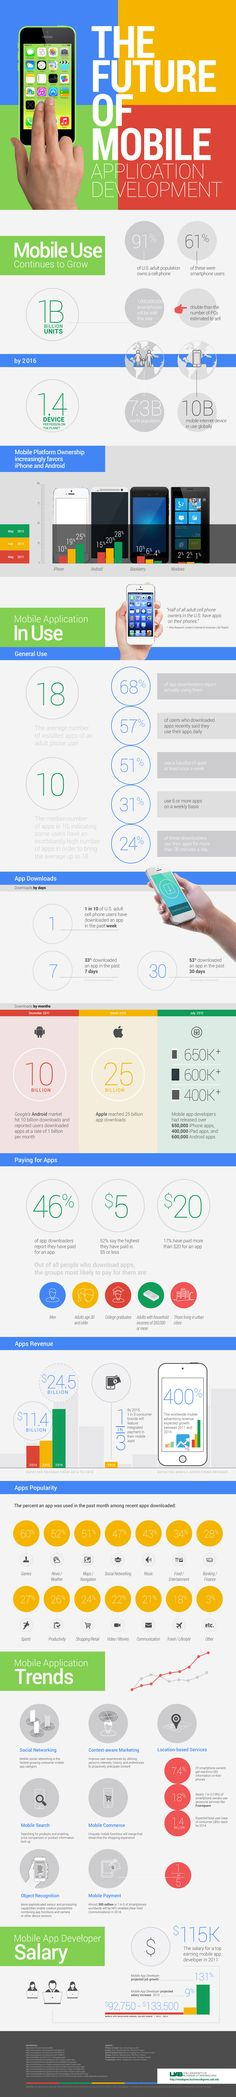 The Future is Bright for the Mobile App Industry [Infographic] #mobile #infographic